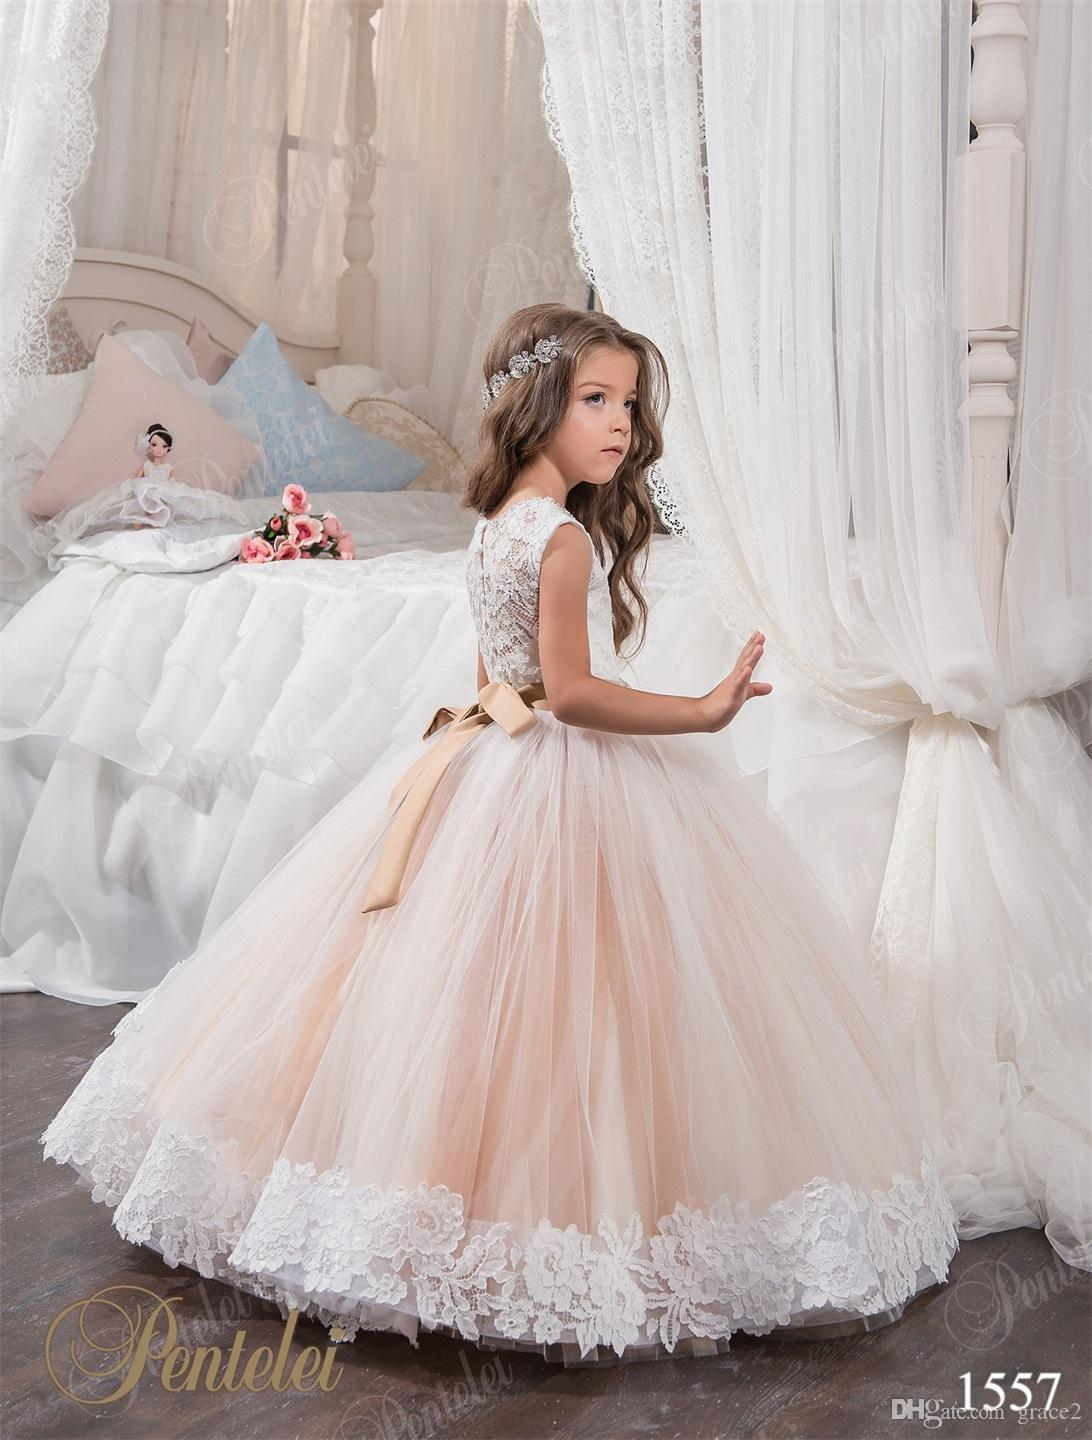 Miniature bridal dresses for little girls 2017 pentelei with miniature bridal dresses for little girls 2017 pentelei with beaded sash and jewel neck appliques lace tulle ball gown flower girls dress full length ombrellifo Image collections